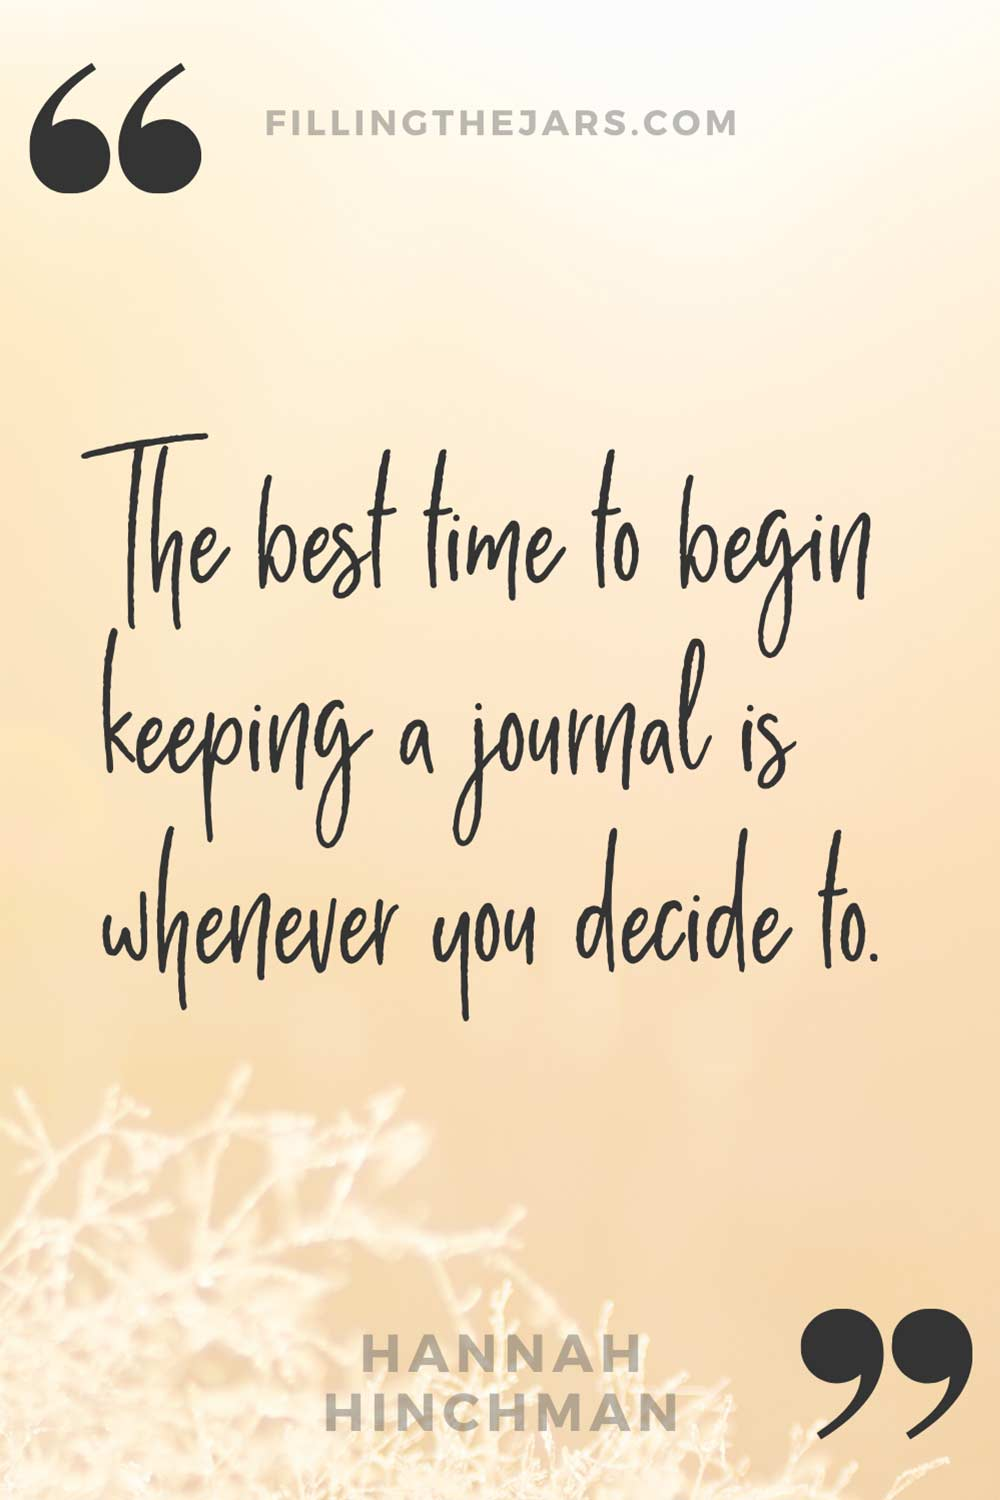 Hannah Hinchman quote 'The best time to begin keeping a journal is whenever you decide to.' on orange tinted background of sunrise on frosted grasses.